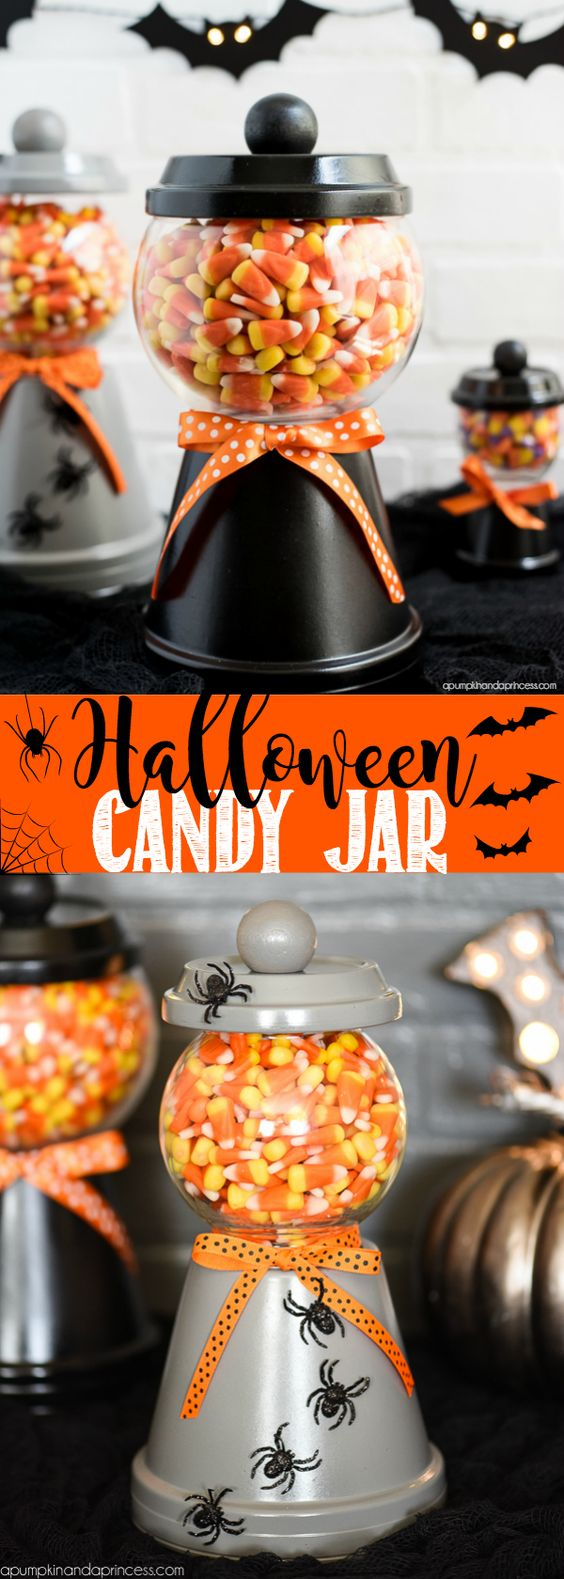 Halloween Candy Jar.